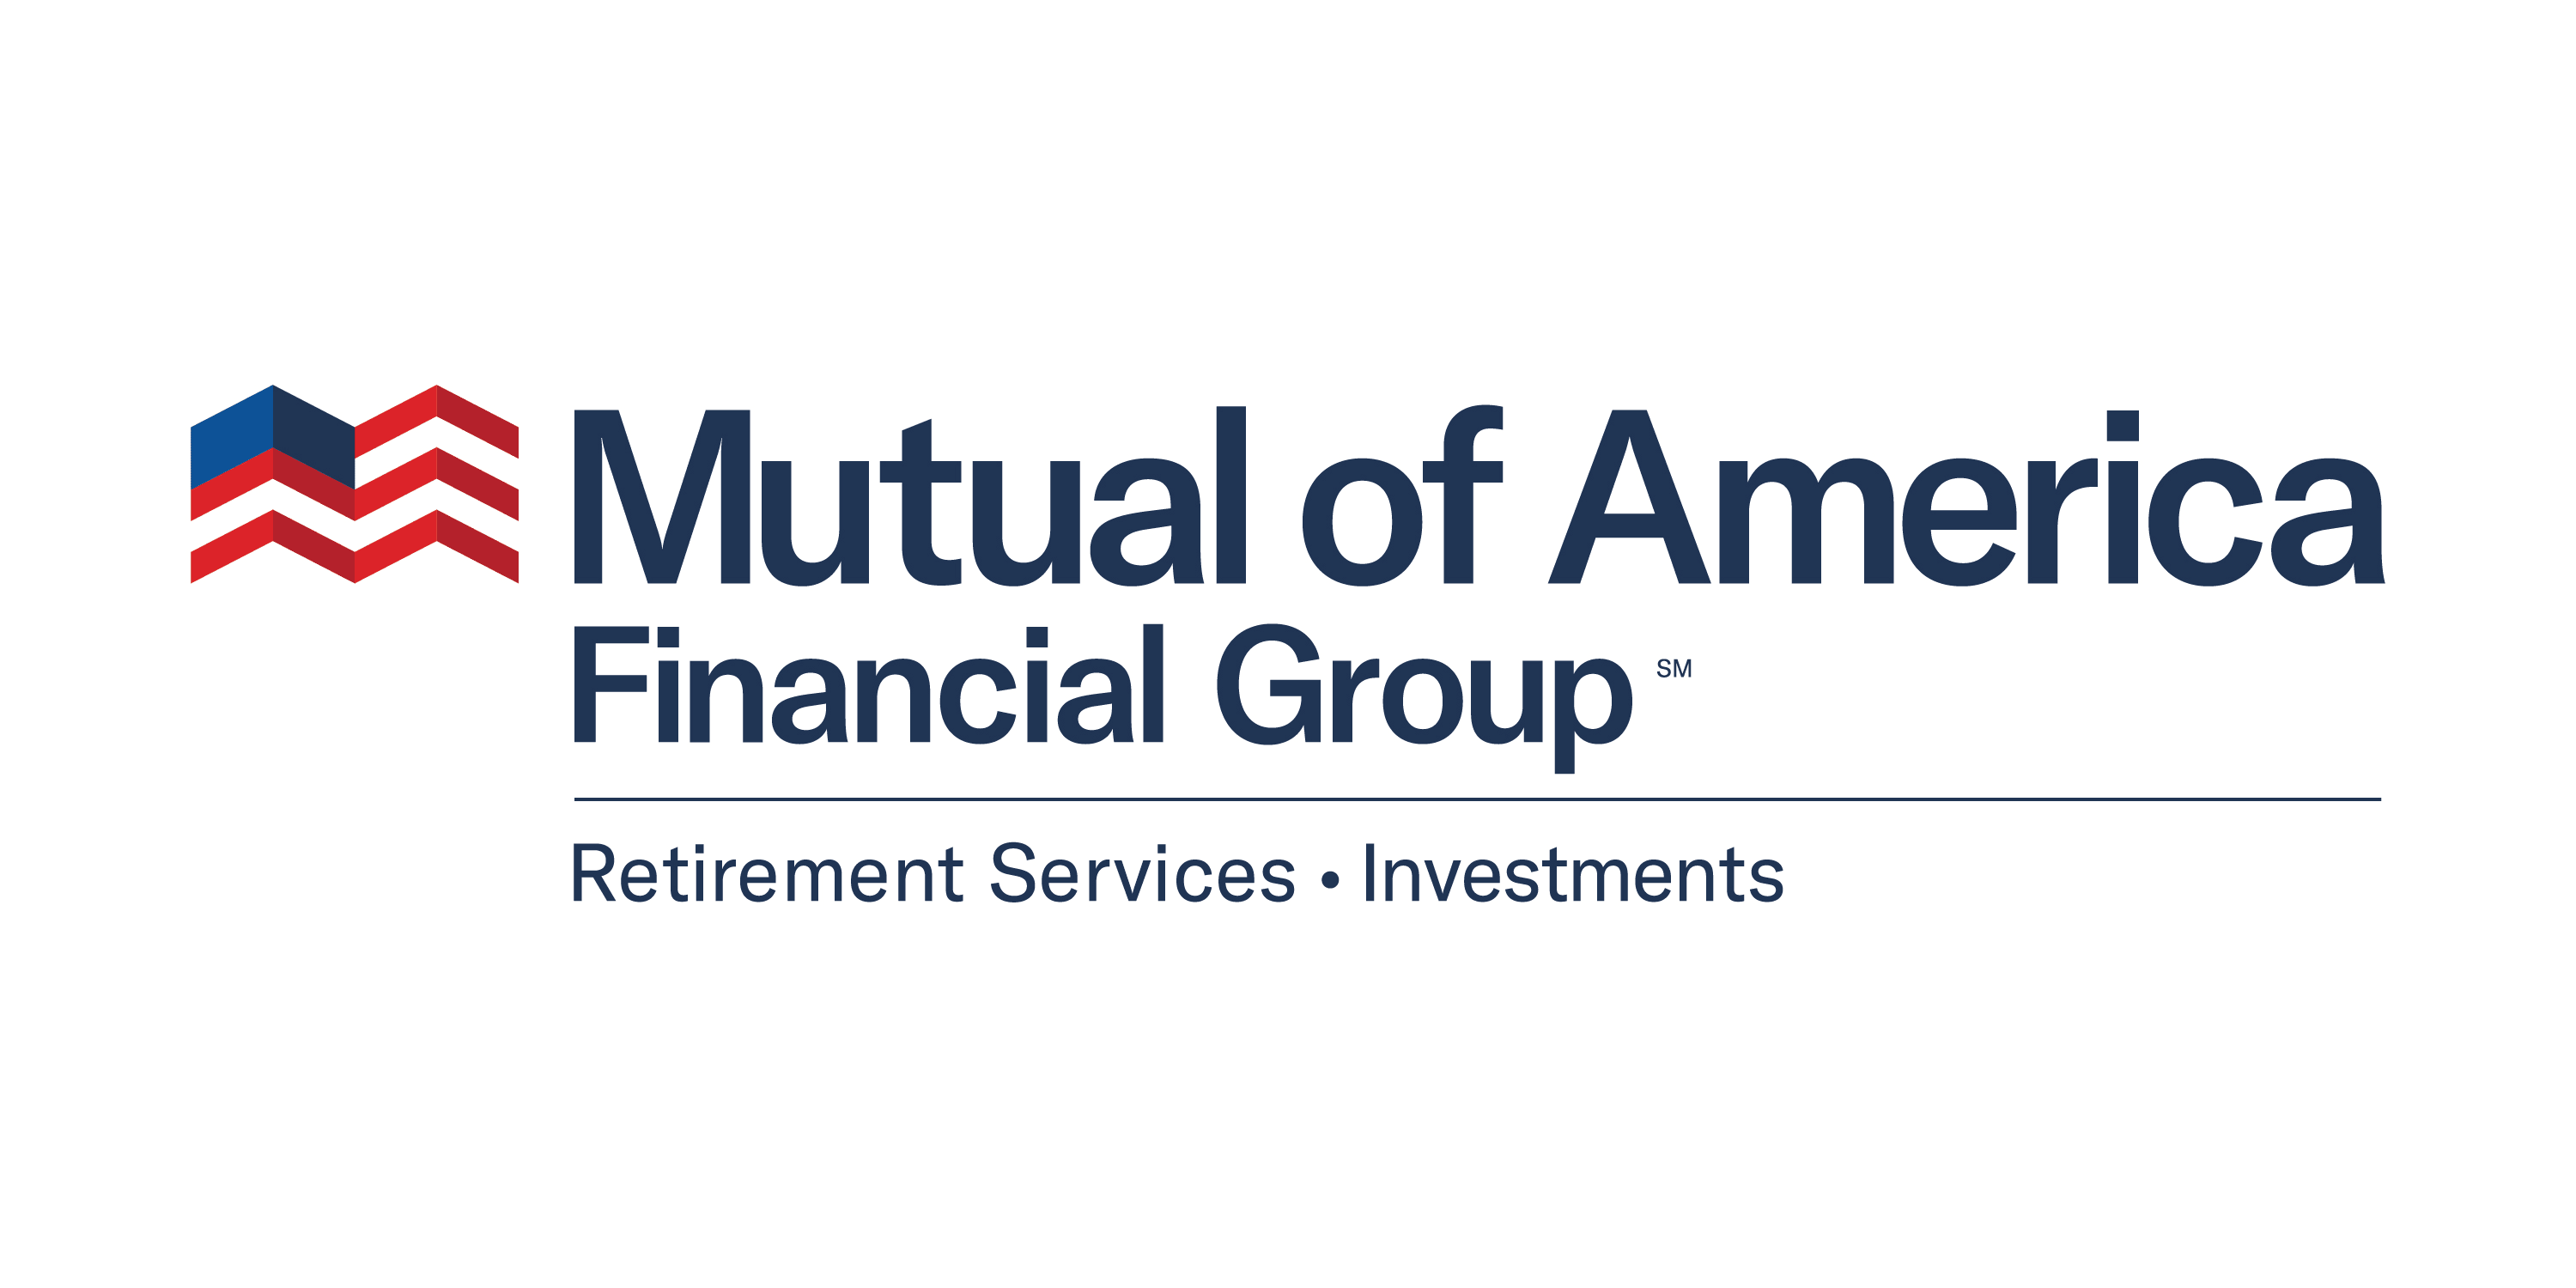 Mutual of America Financial Group